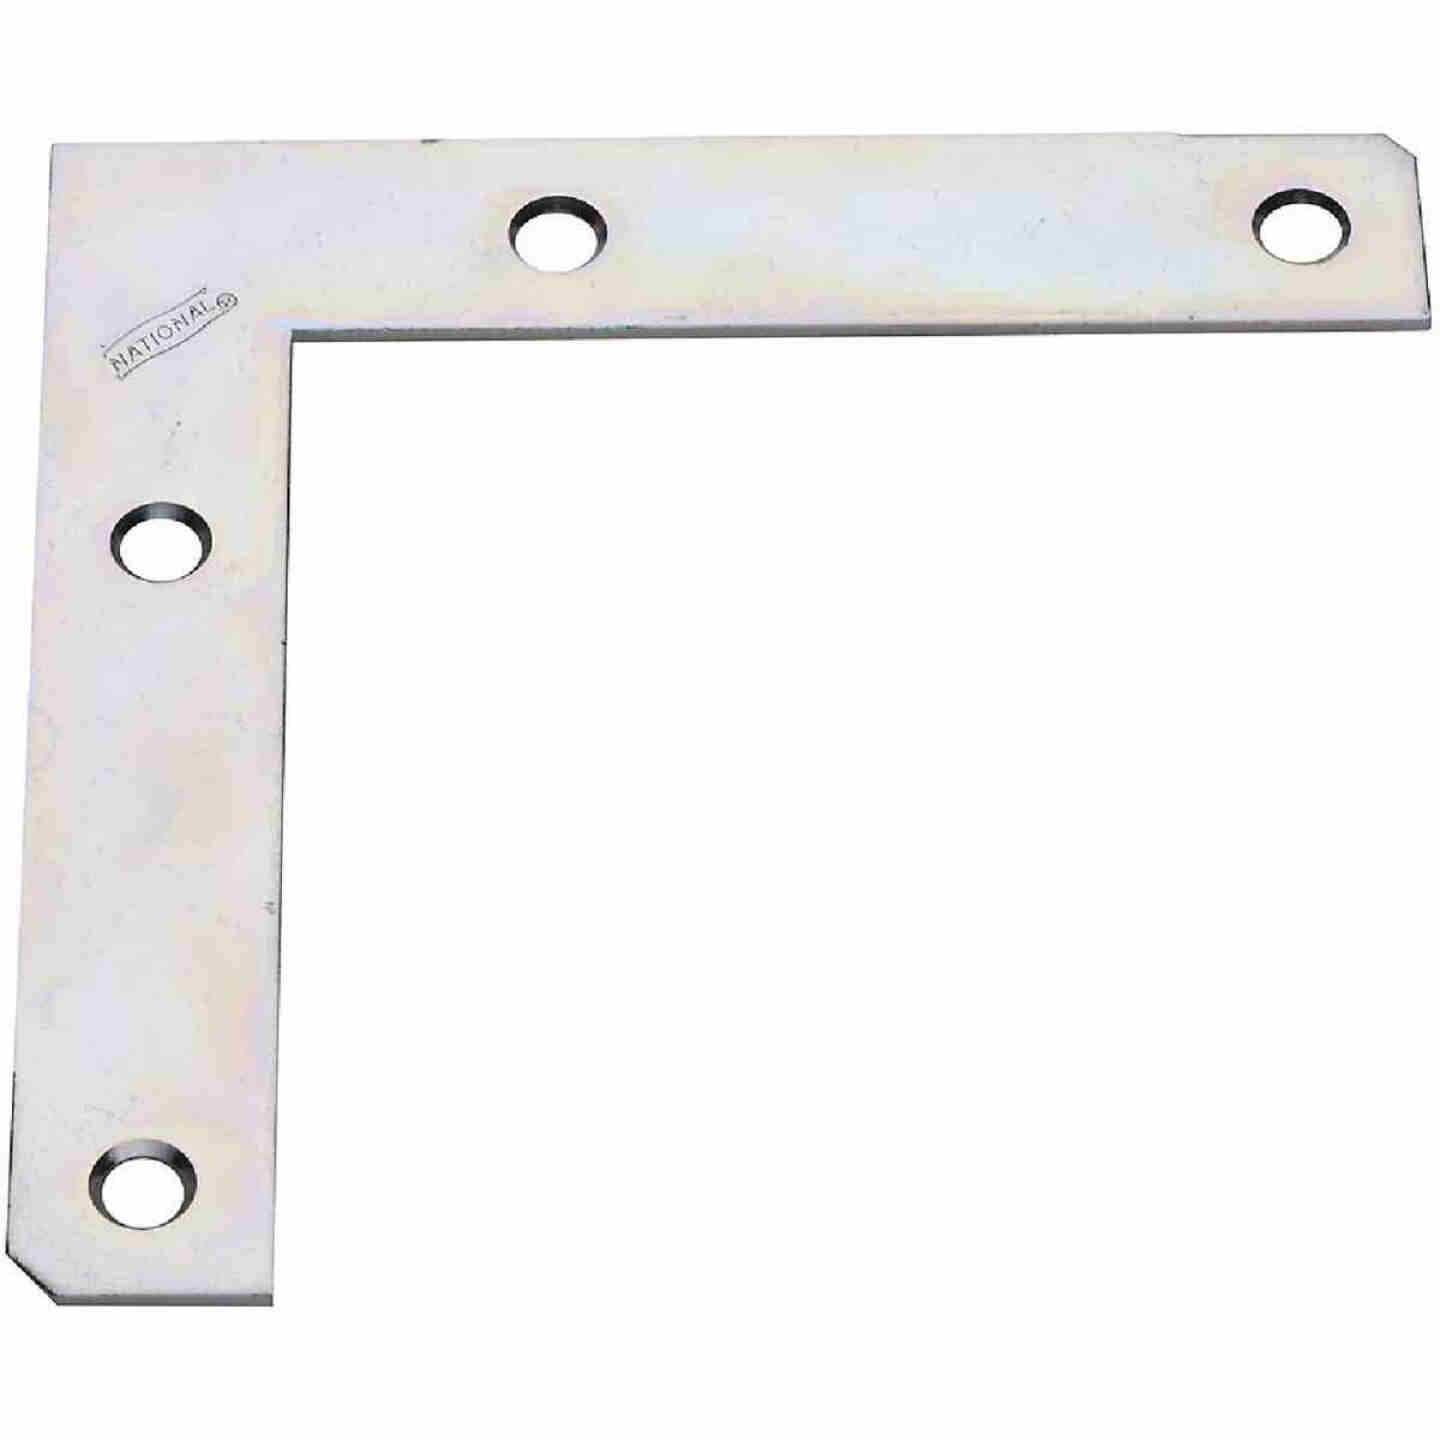 National Catalog 117 5 In. x 7/8 In. Zinc Flat Corner Iron Image 1